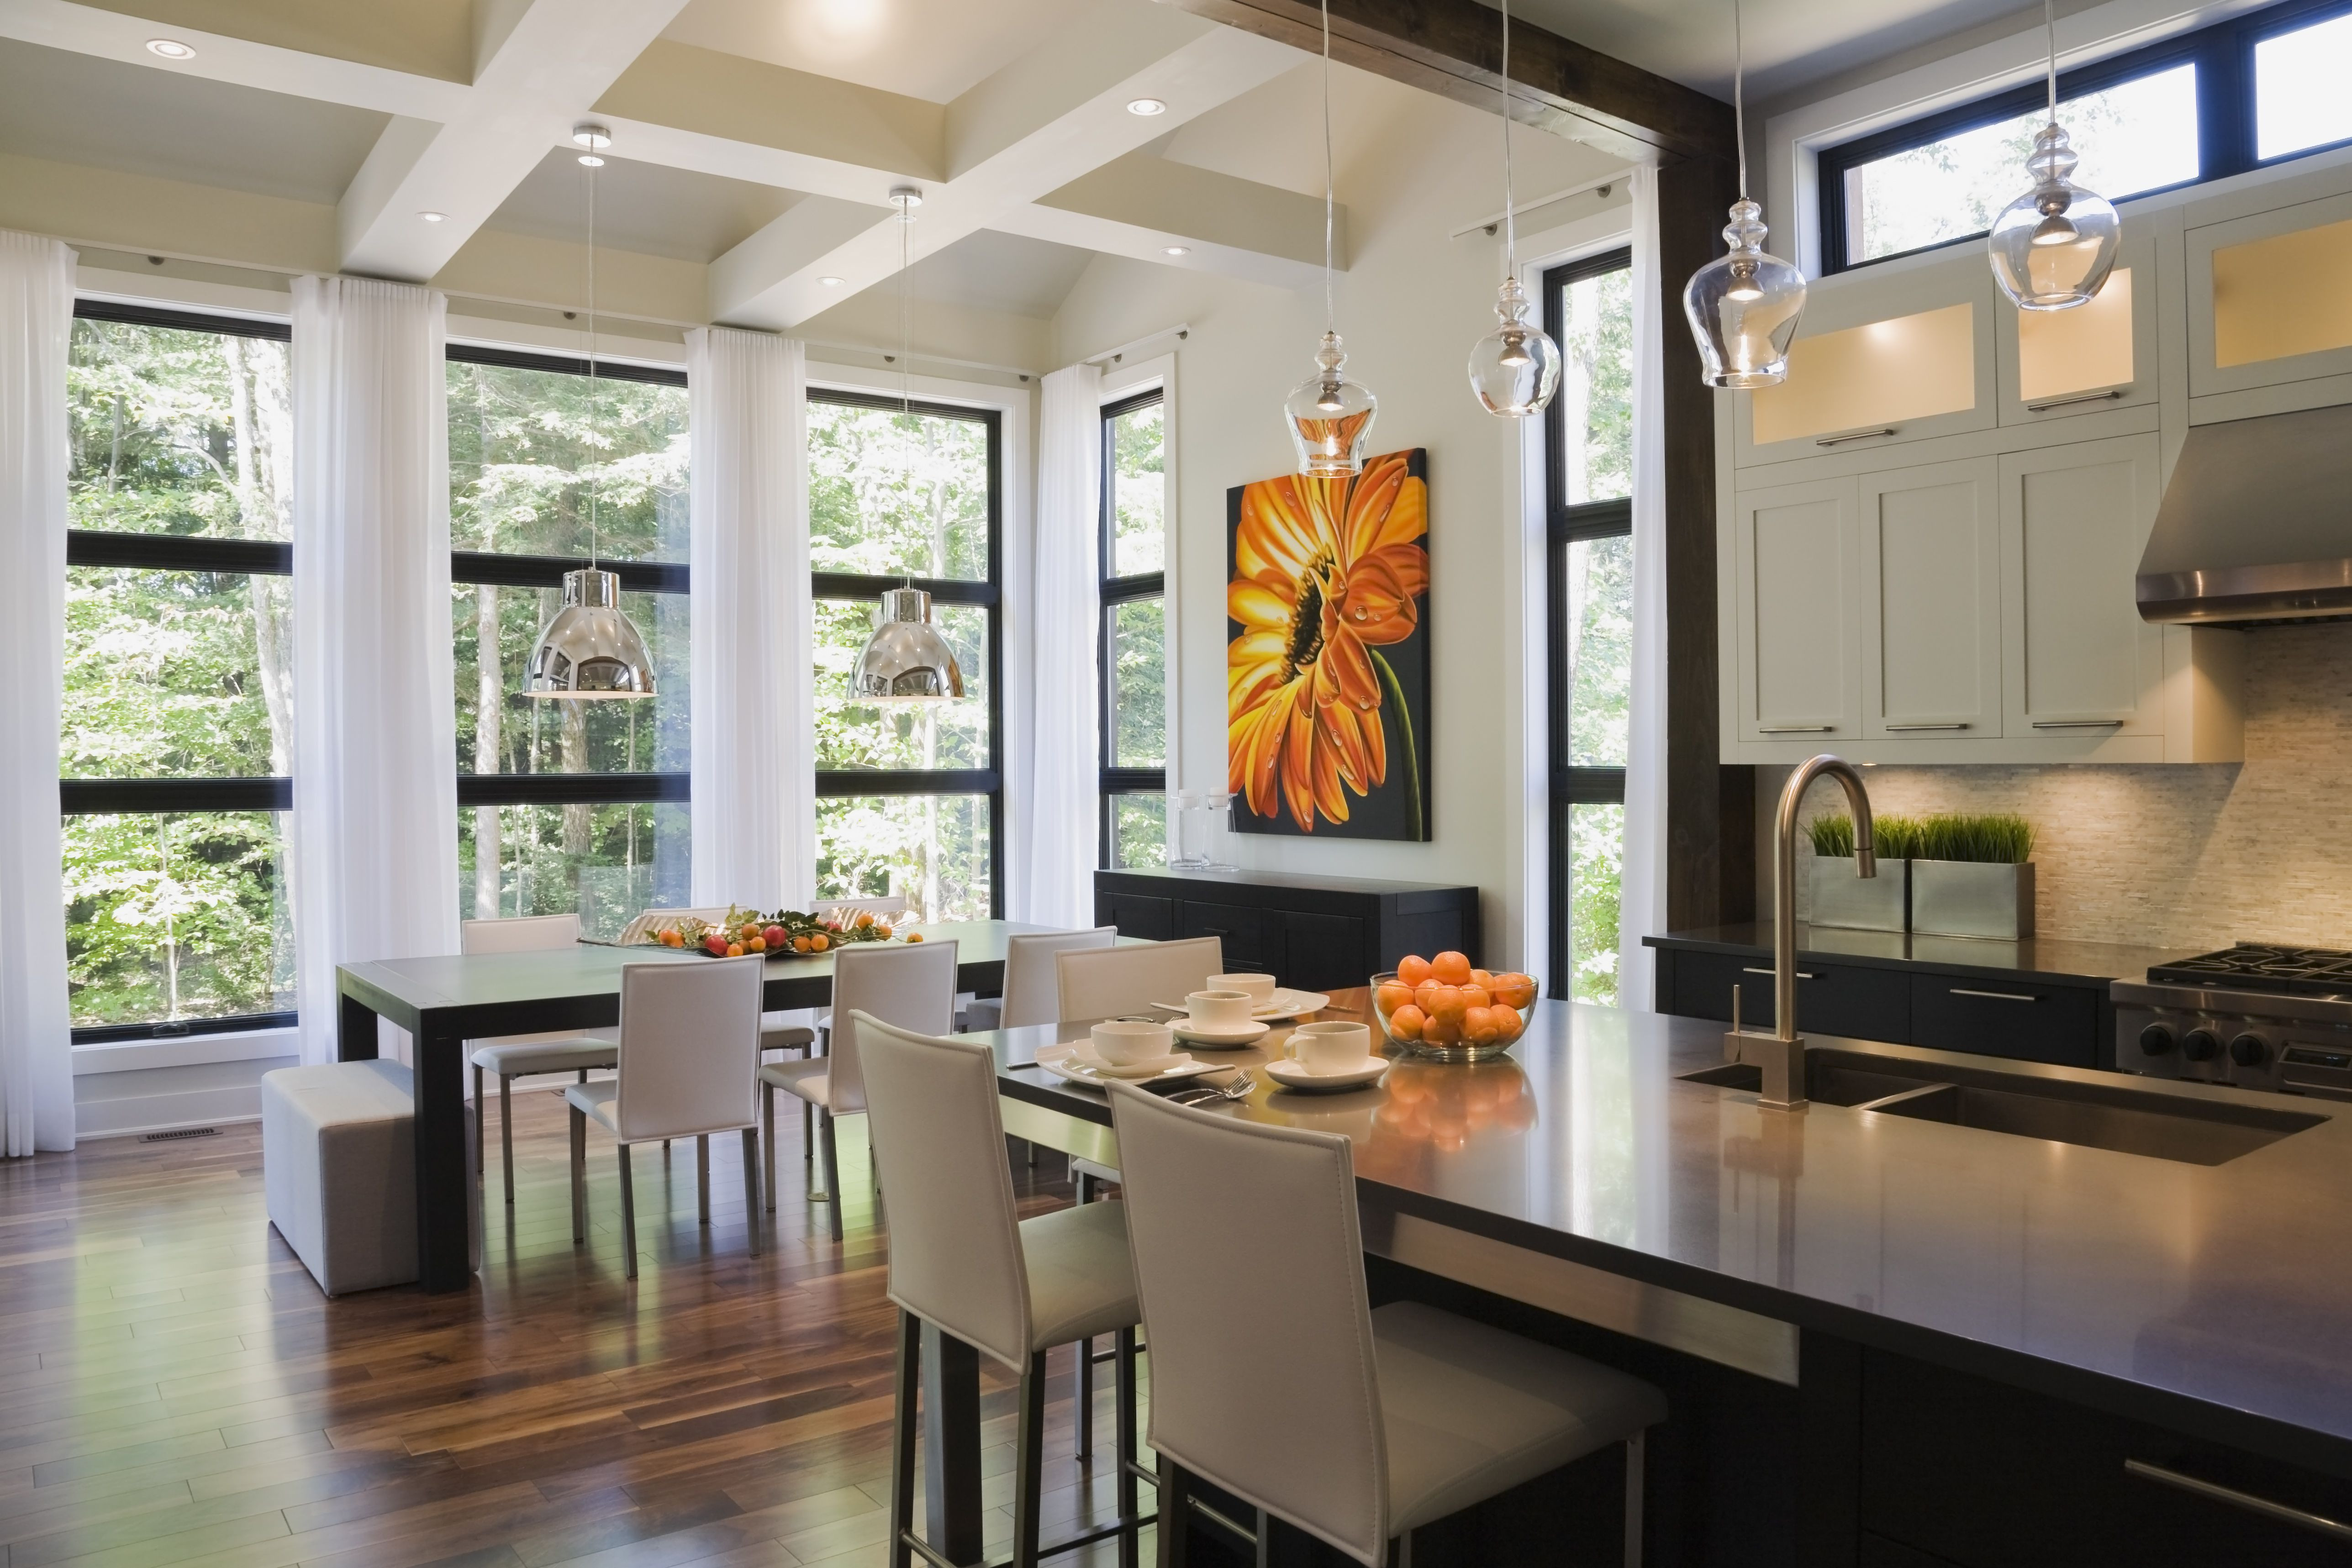 how to repair water damaged hardwood floors of what you need to know about hardwood floors in kitchens pertaining to kitchen and dining room inside an upscale residential home quebec canada 519512485 5990dc4622fa3a0010356721